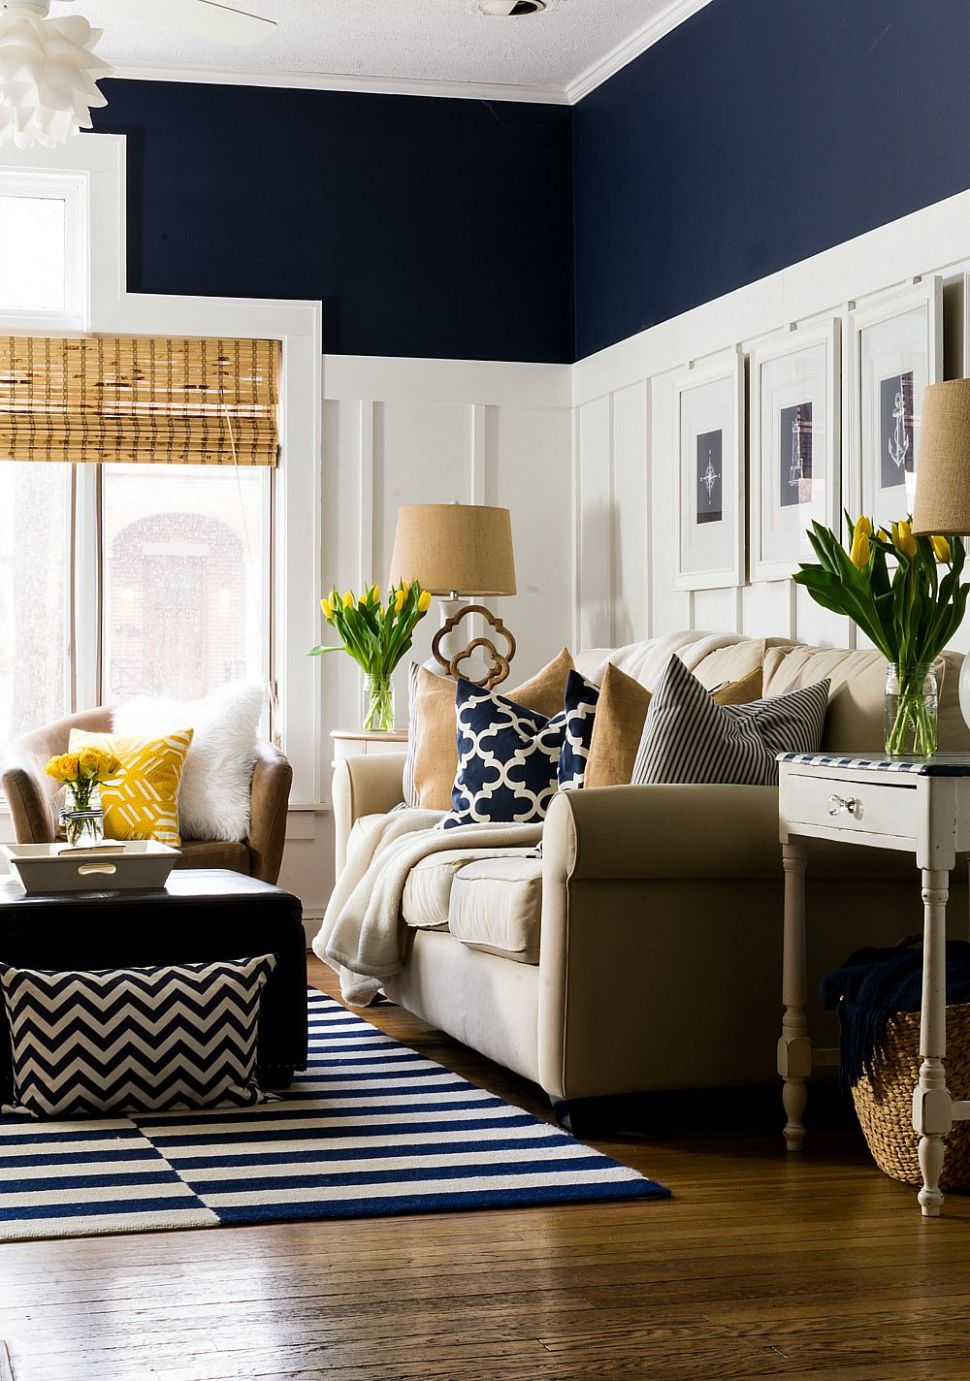 Spring Decor Ideas in Navy and Yellow | Navy living rooms, Navy ...